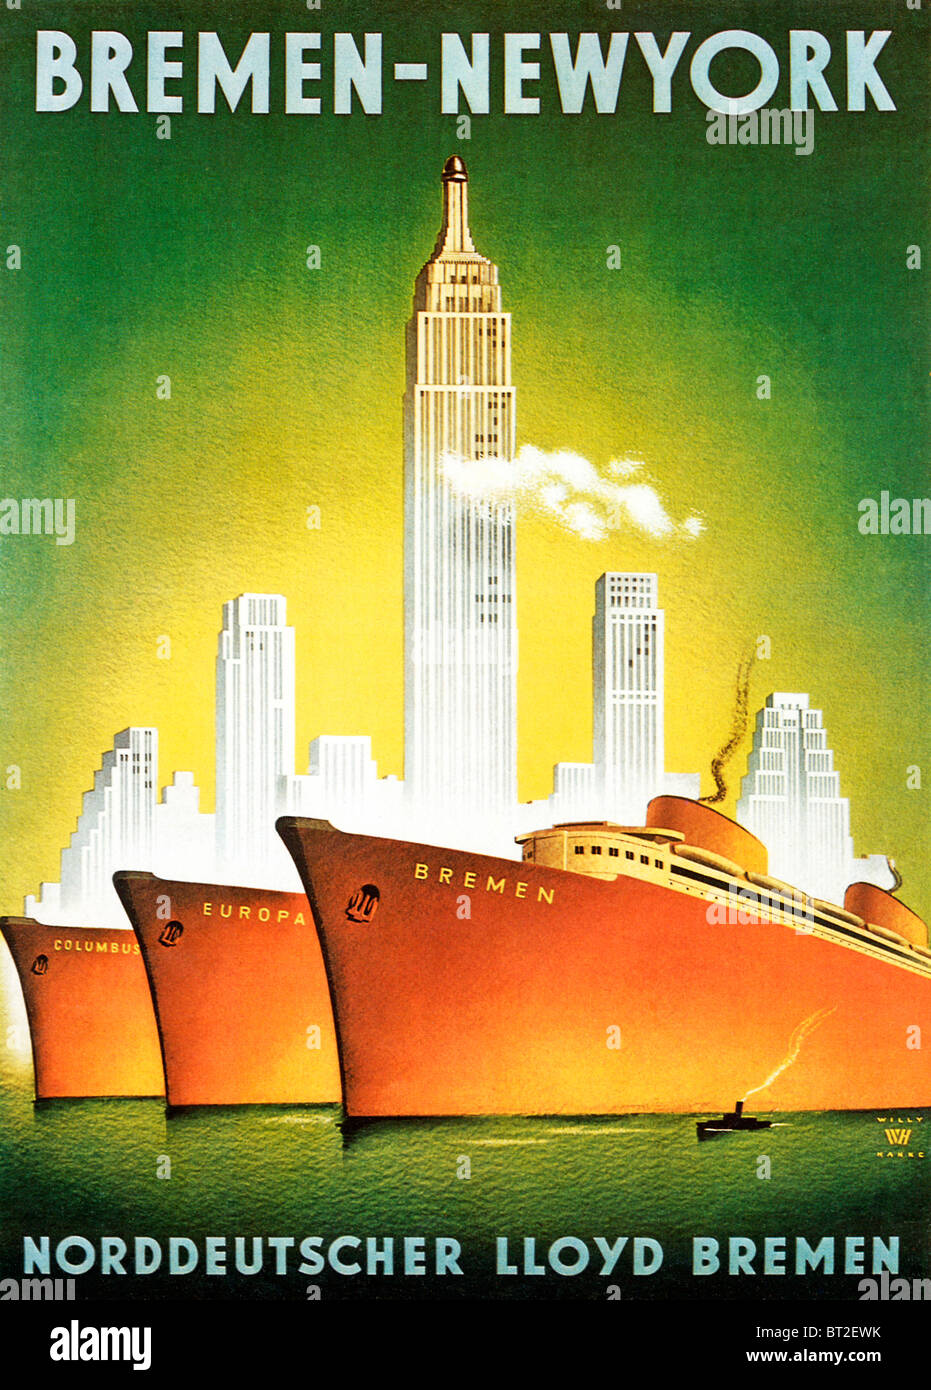 Bremen to New York, 1920s Art Deco poster for the Norddeutscher Lloyd Bremen line sailing from Europe to America - Stock Image